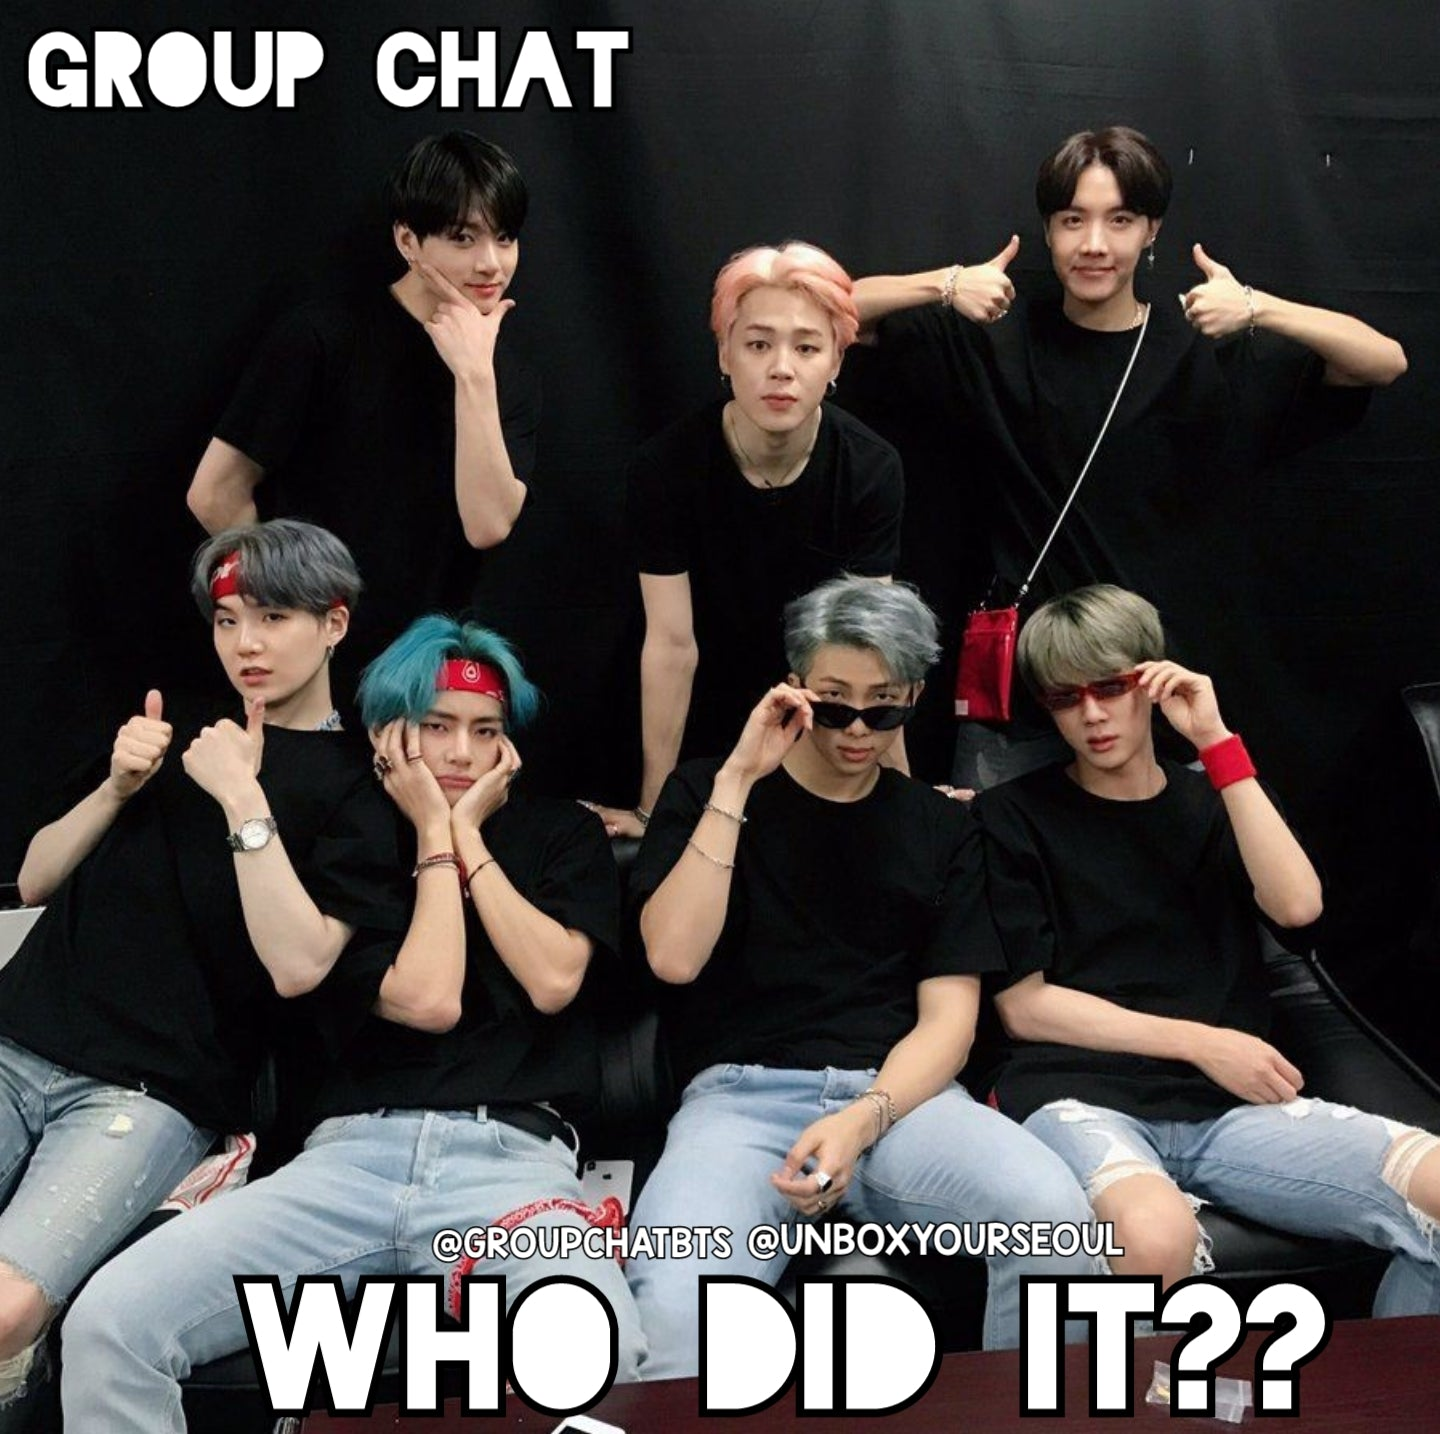 bts imagines groupchatbts groupchat fan fiction